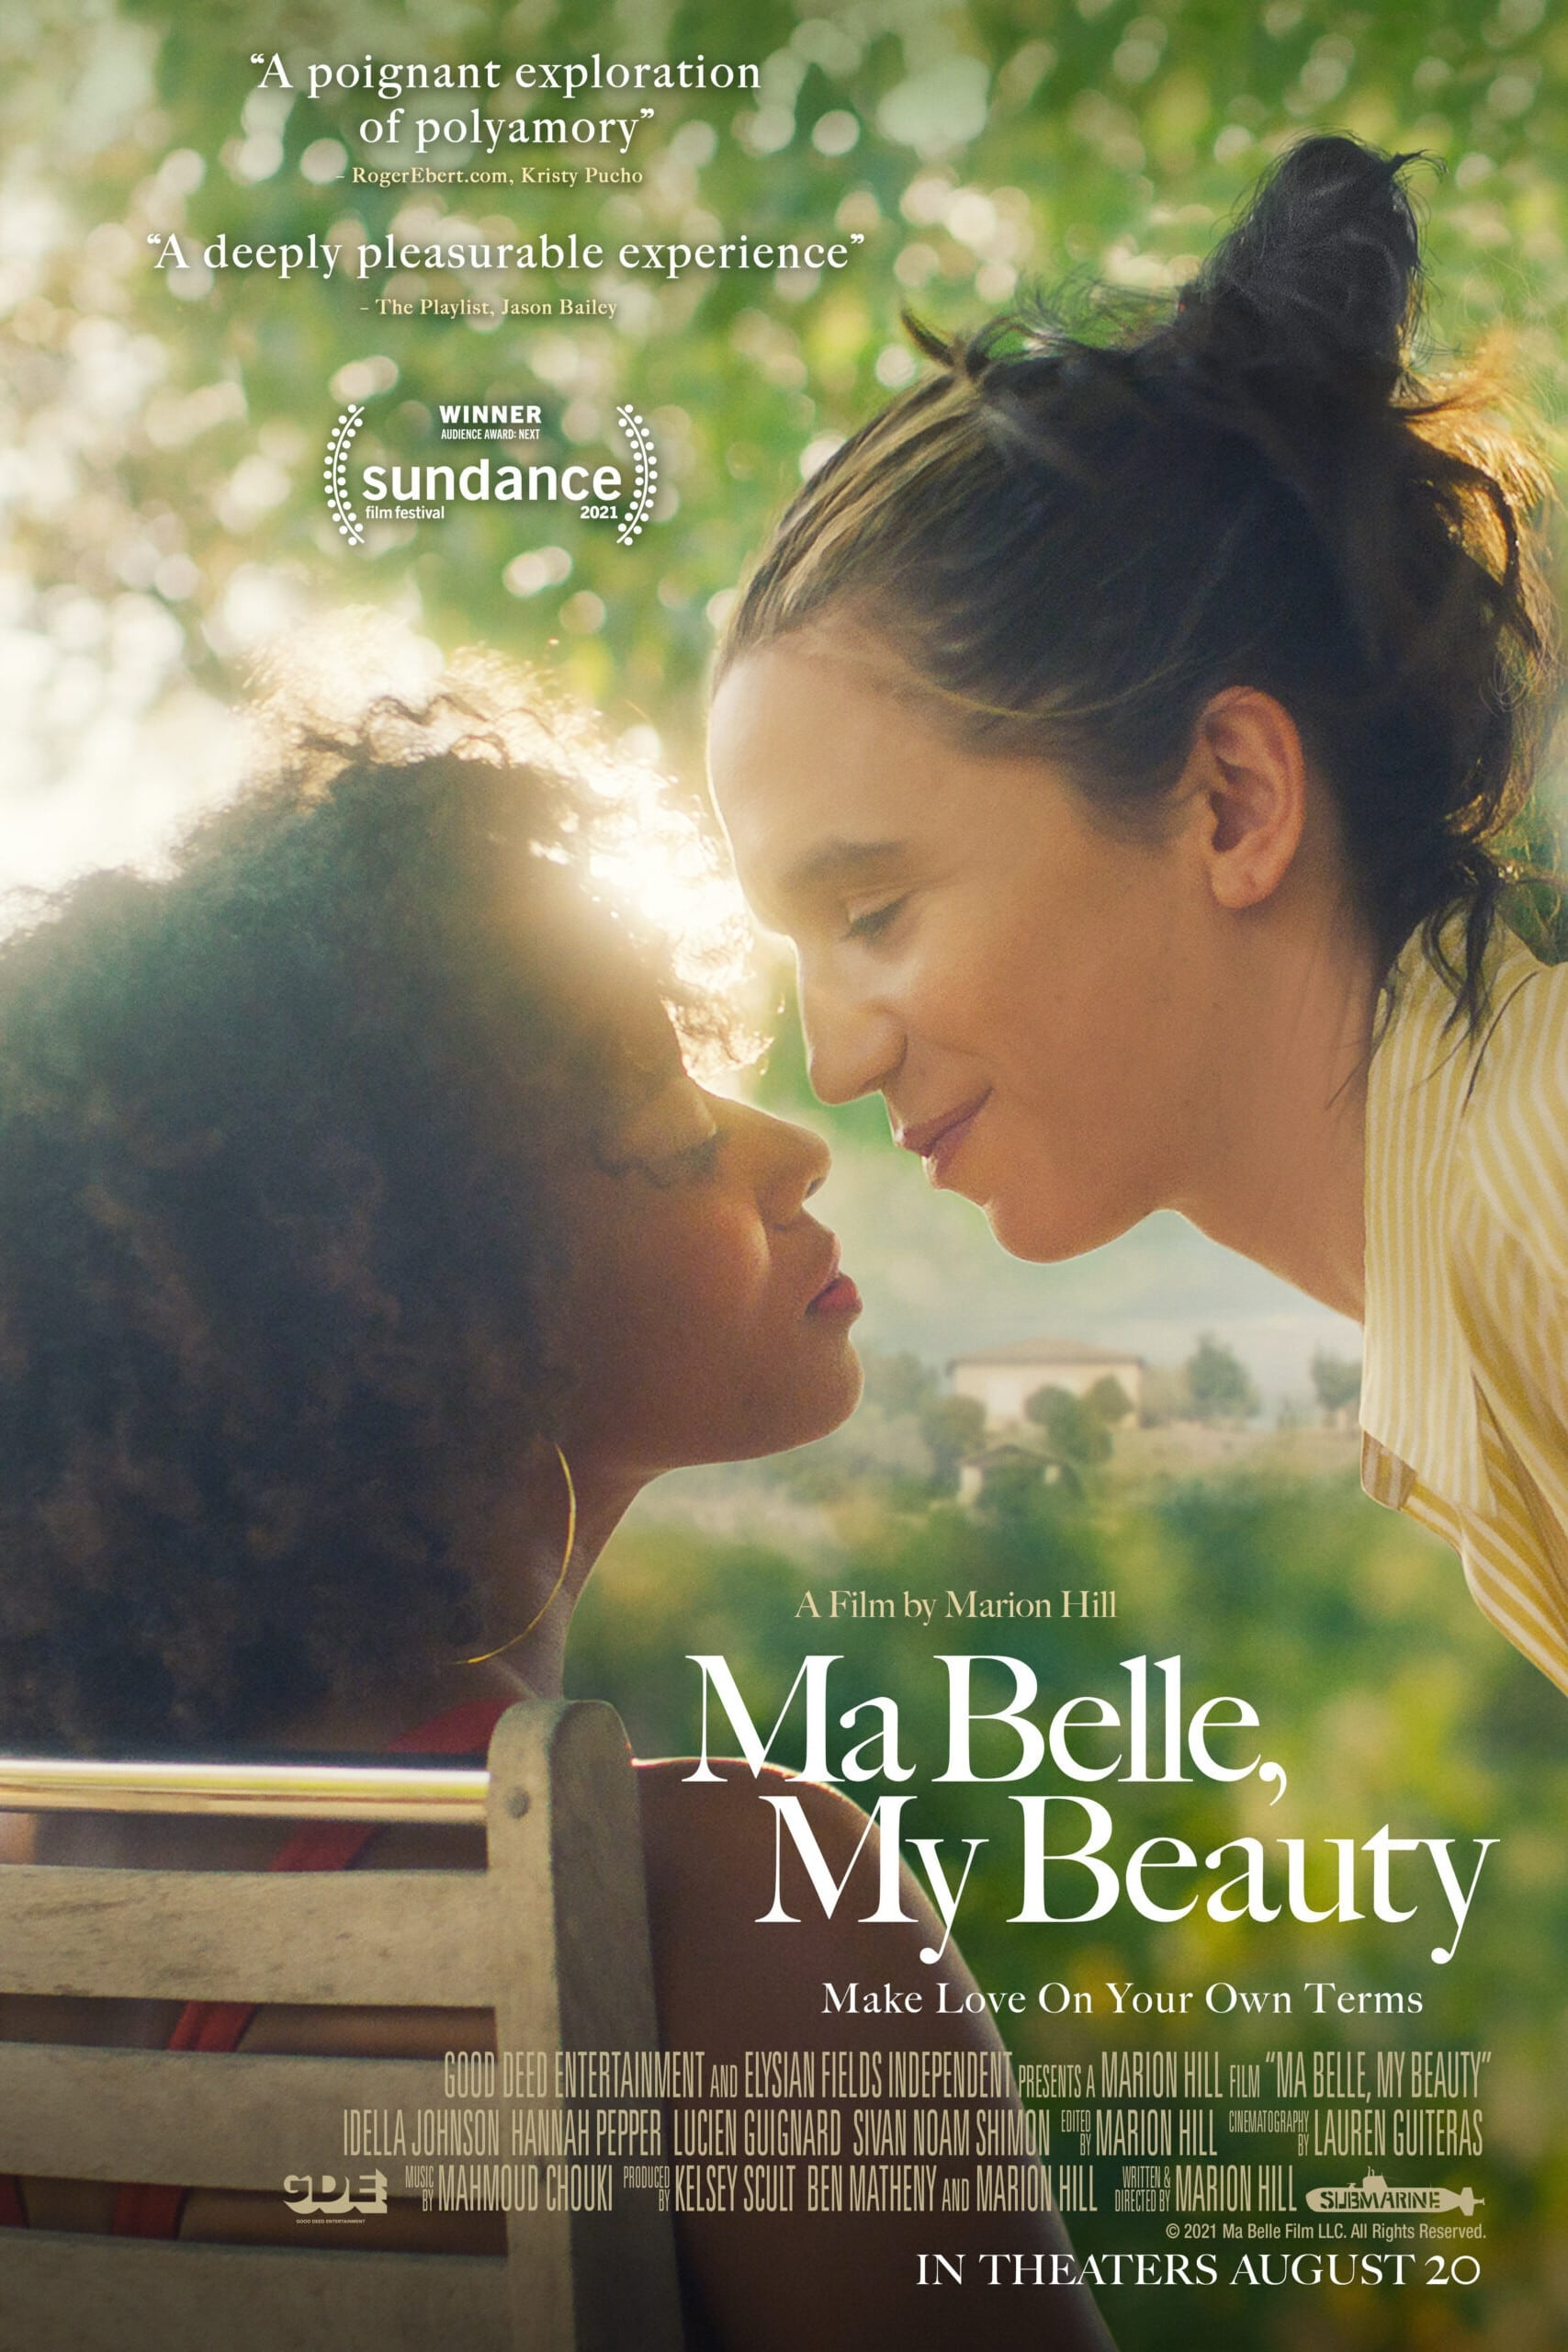 Poster for Ma Belle, My Beauty